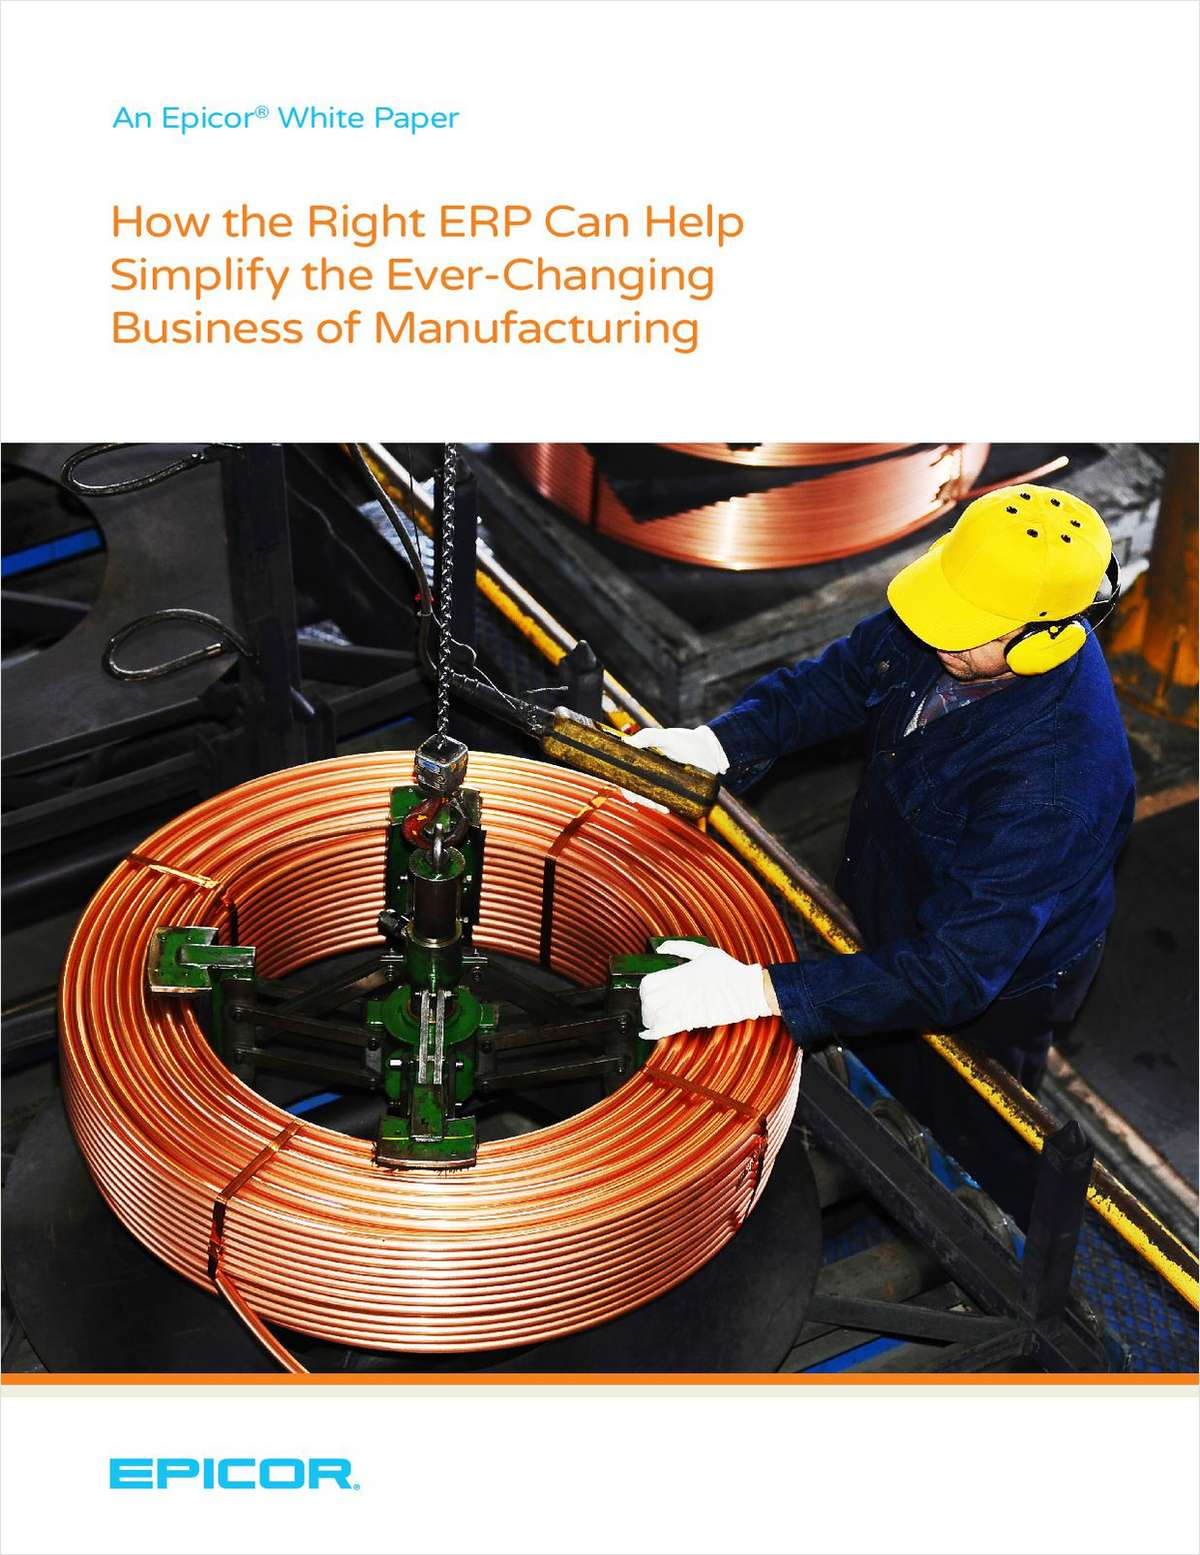 Why Choosing the Right ERP Can Help Simplify the Ever-Changing Business of Manufacturing